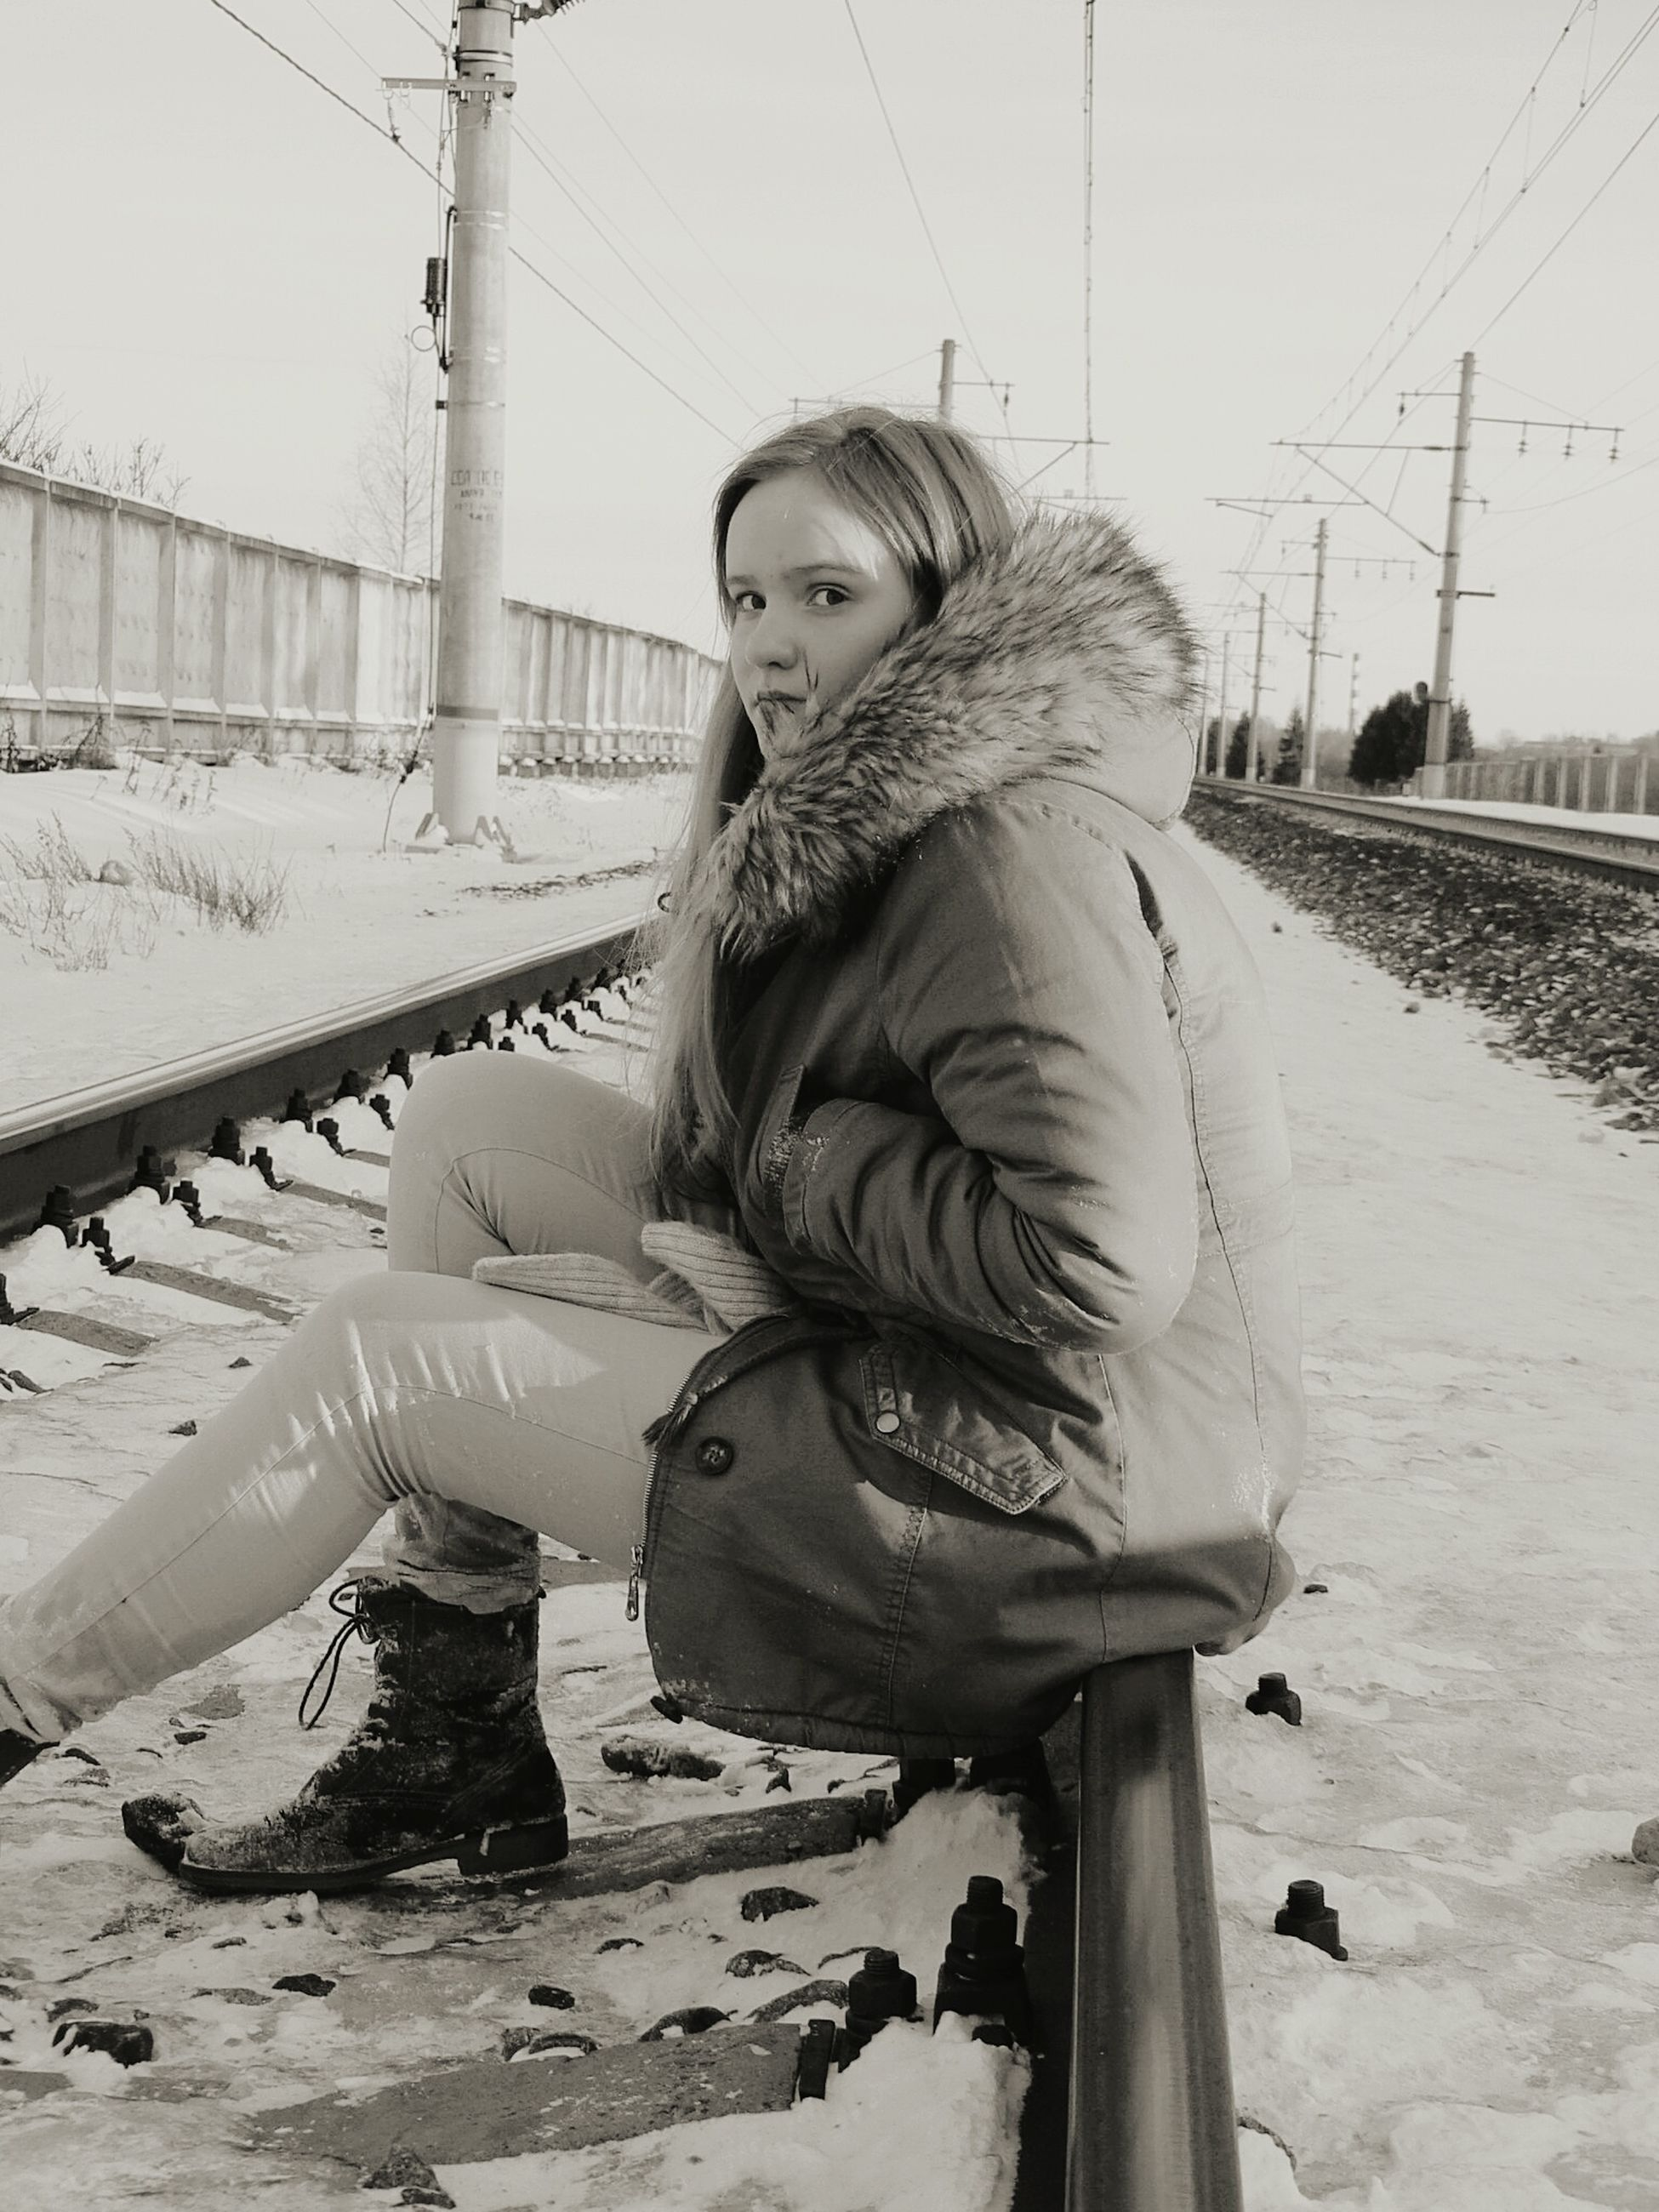 snow, winter, cold temperature, lifestyles, full length, season, casual clothing, transportation, warm clothing, person, leisure activity, standing, young adult, looking at camera, front view, weather, road, railroad track